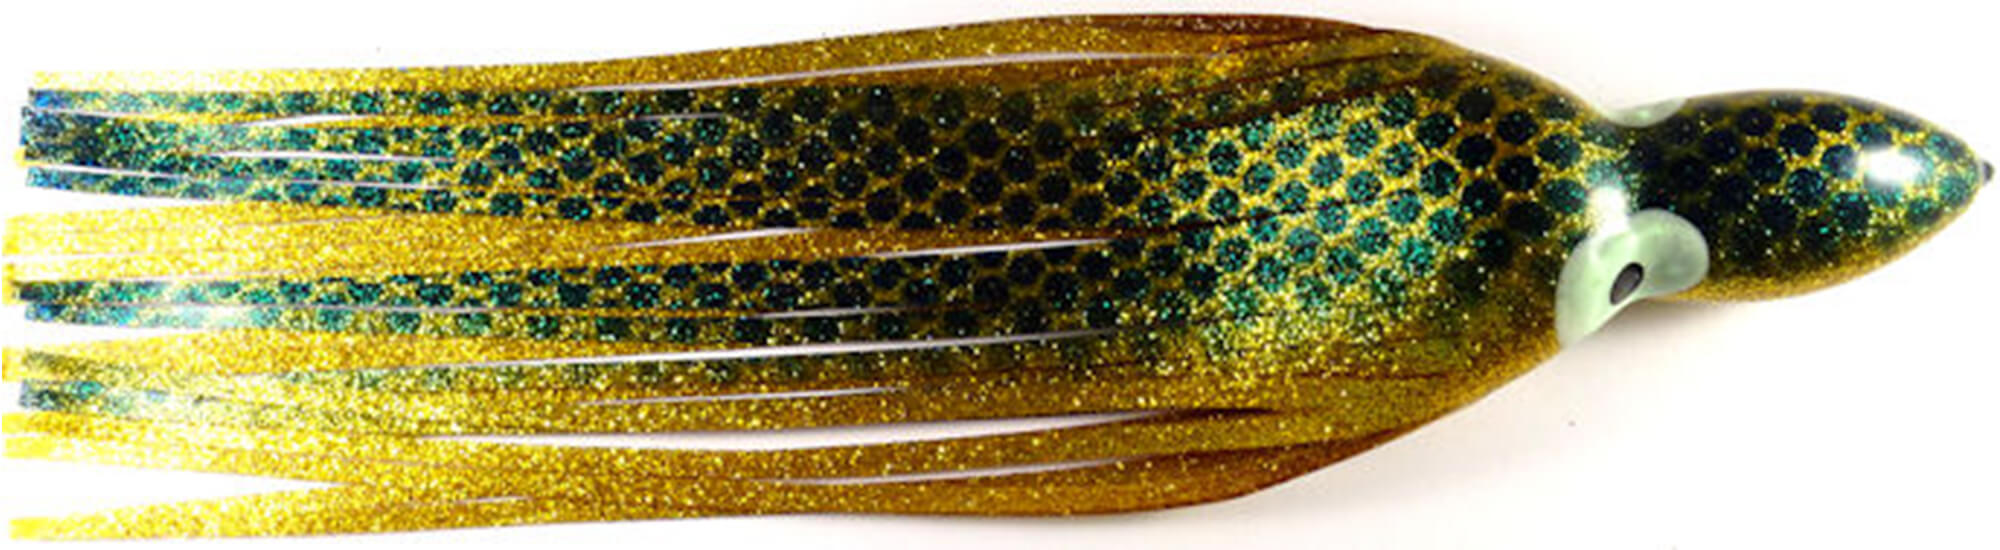 Yo-Zuri Skirts - Huge range available for trolling lures